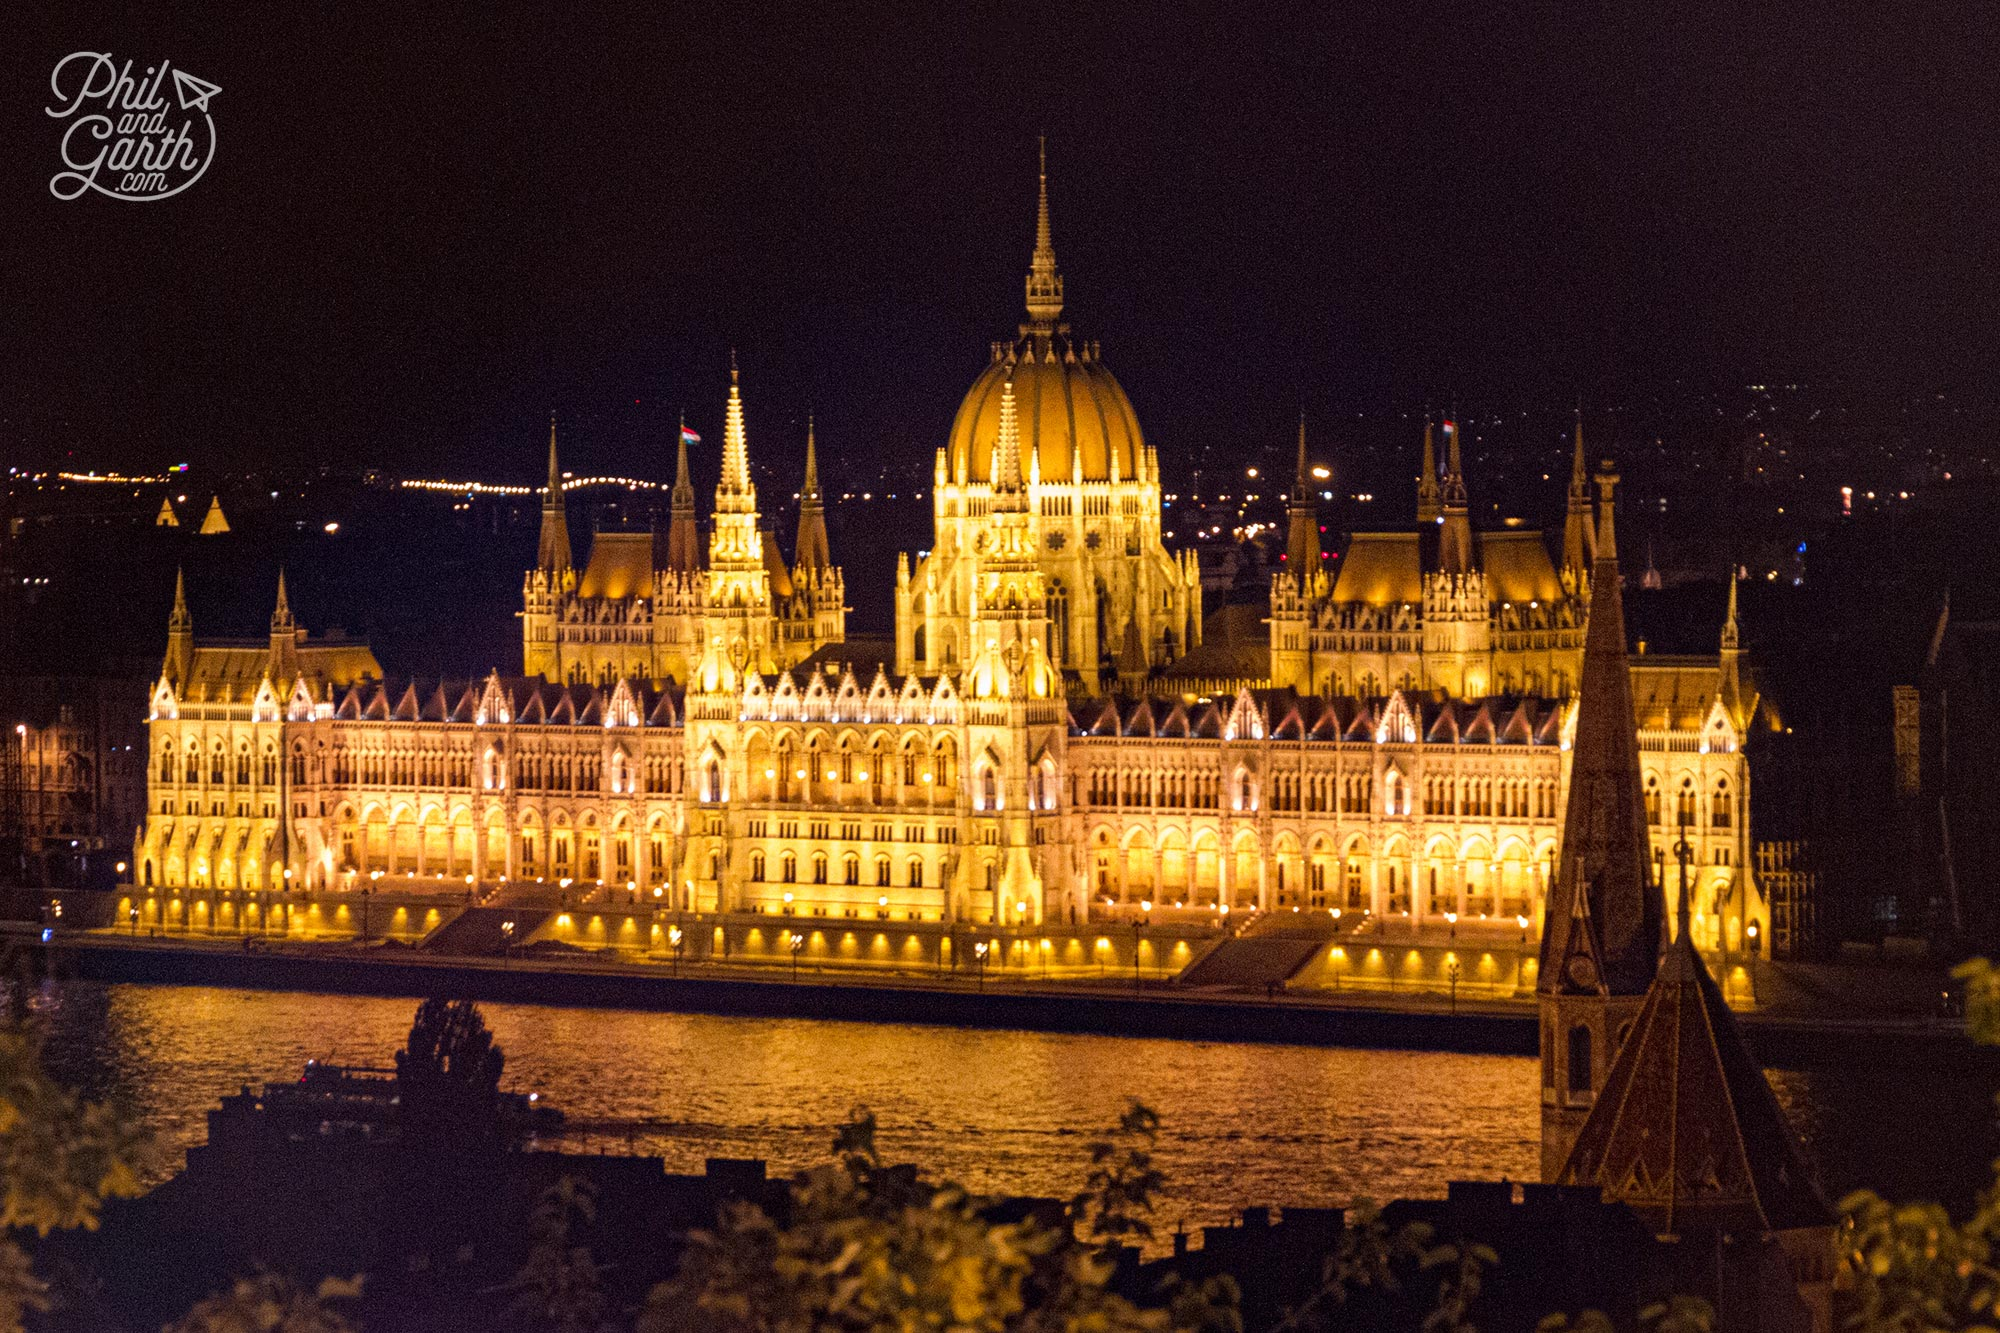 A view of the Hungarian Parliament Building at night from Fisherman's Bastion